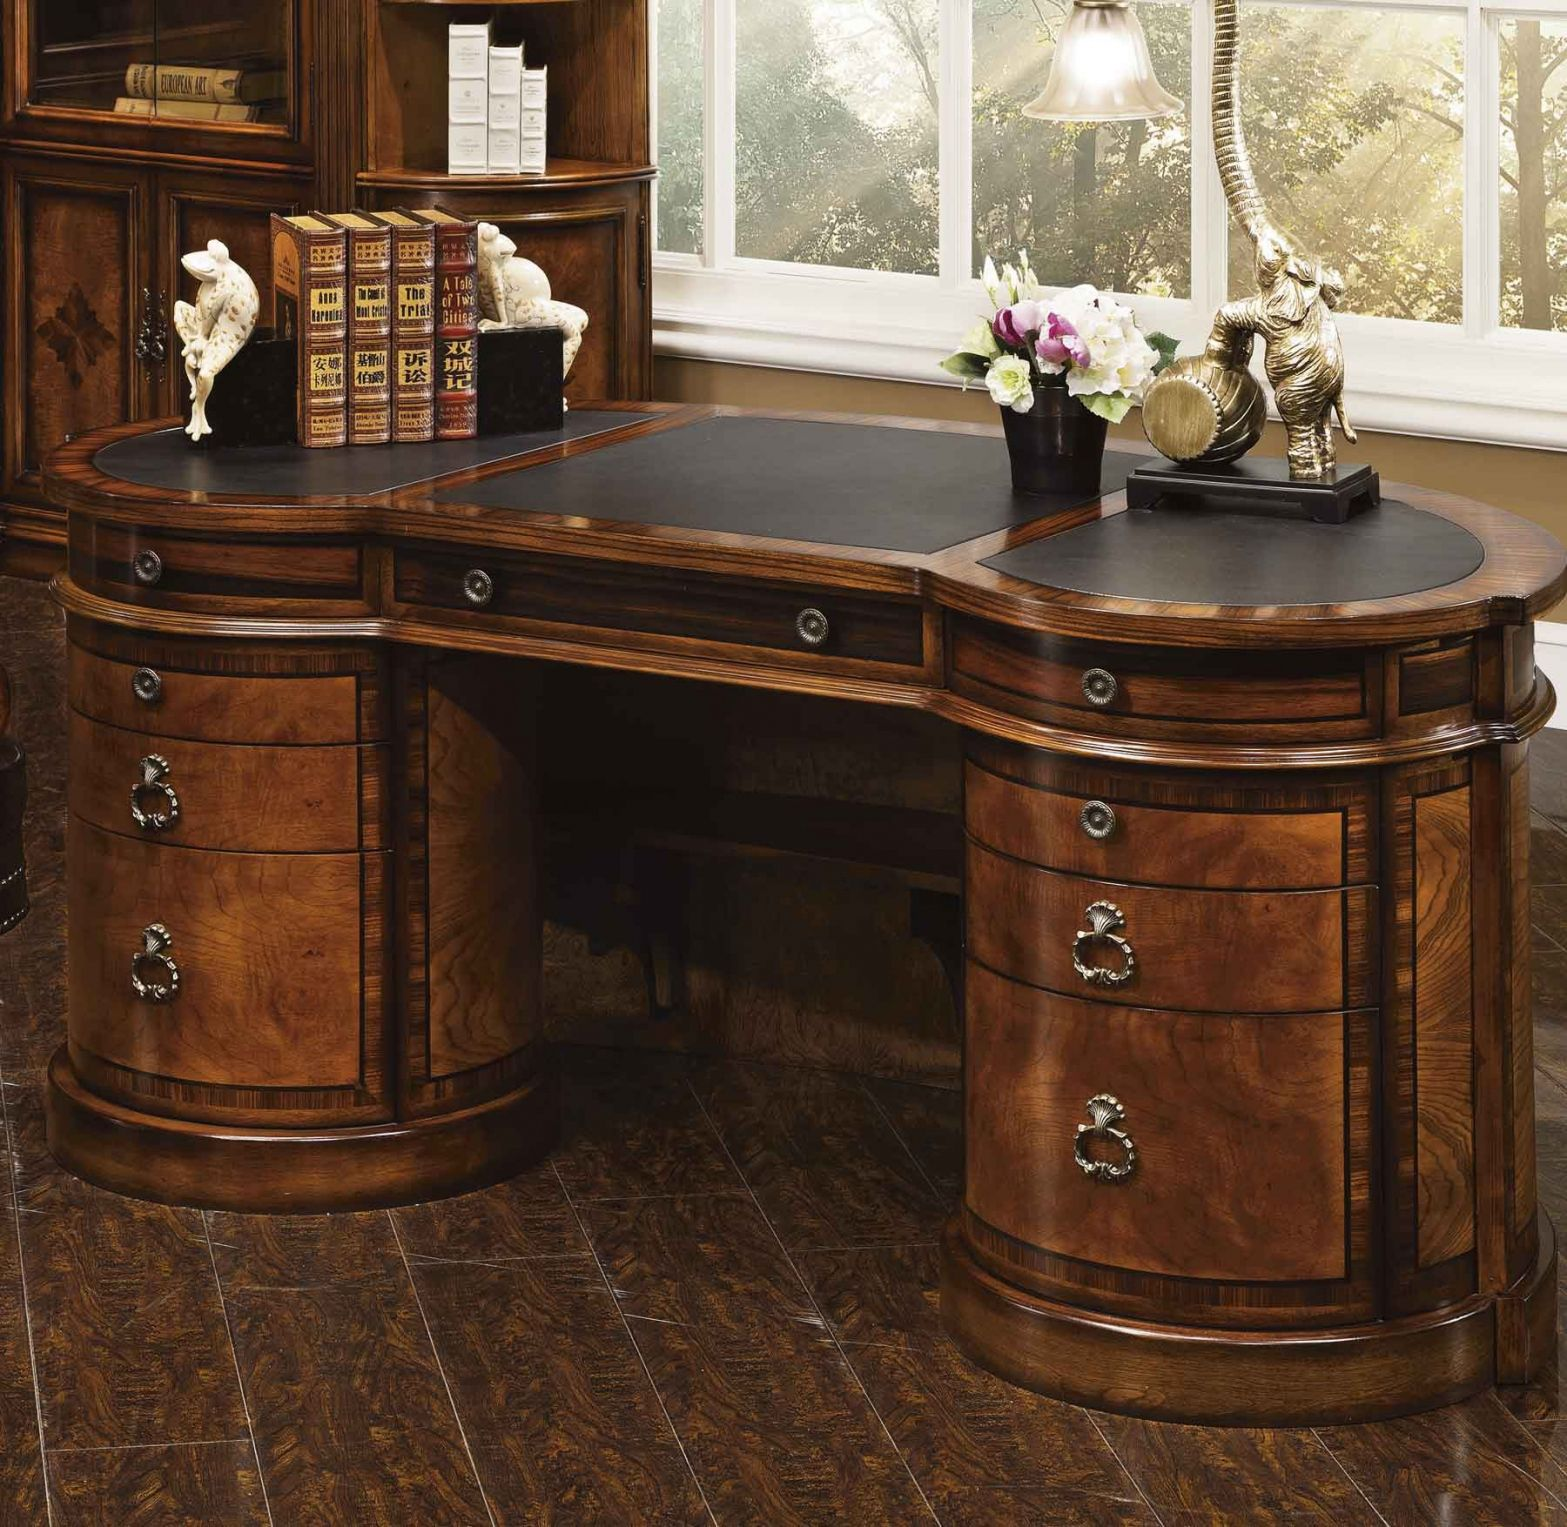 50+ Antique Executive Desks - Real Wood Home Office Furniture Check more at  http://adidasjrcamp.com/55-antique-executive-desks -used-home-office-furniture/ - 50+ Antique Executive Desks - Real Wood Home Office Furniture Check